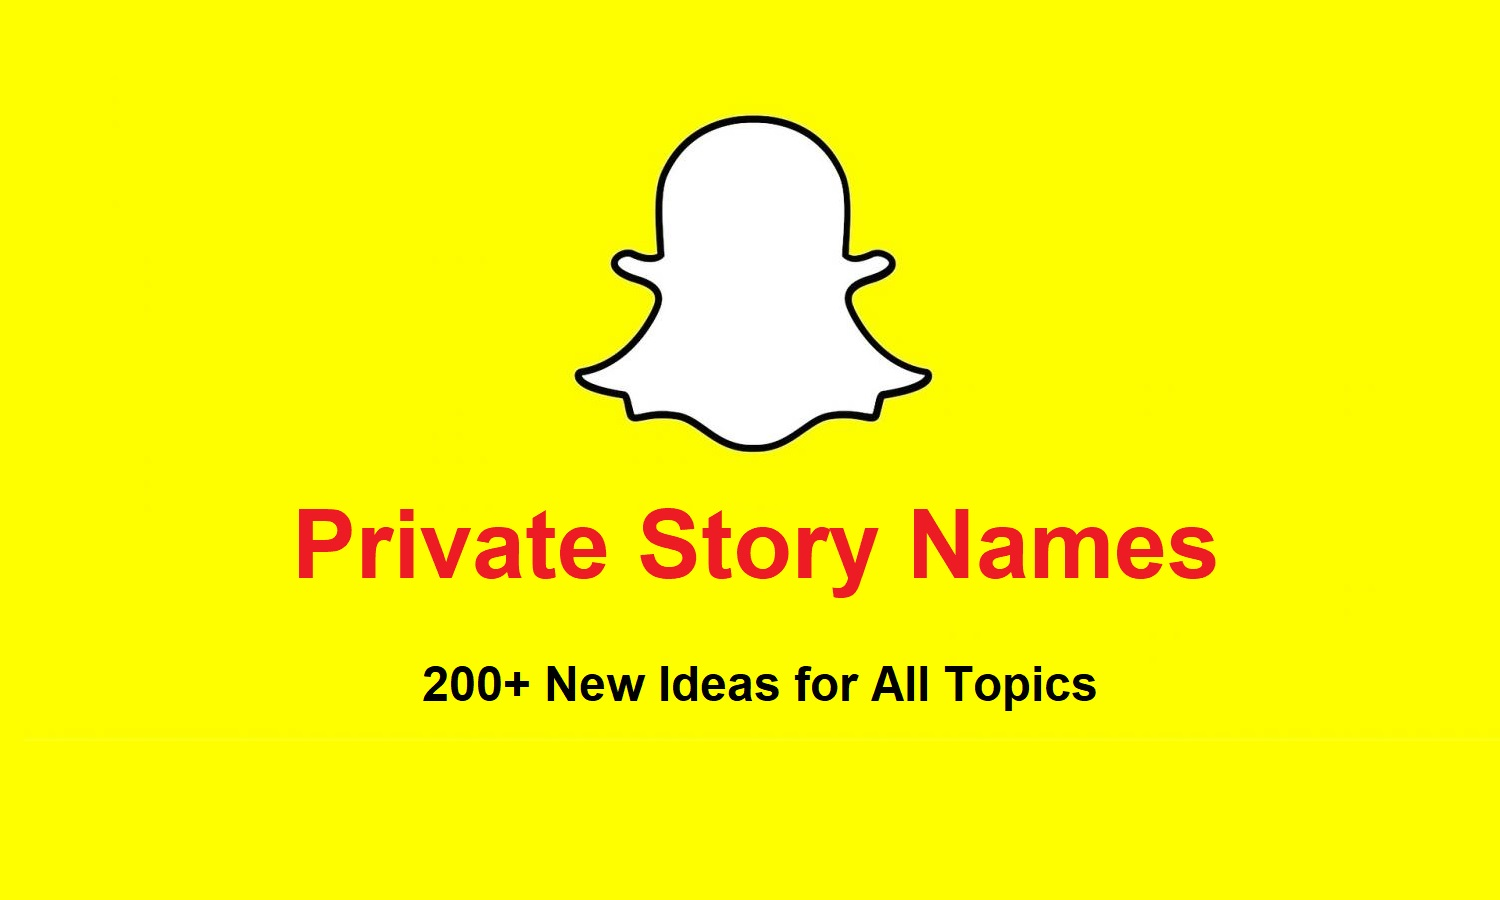 Private Story Names: 200+ New Ideas for All Topics